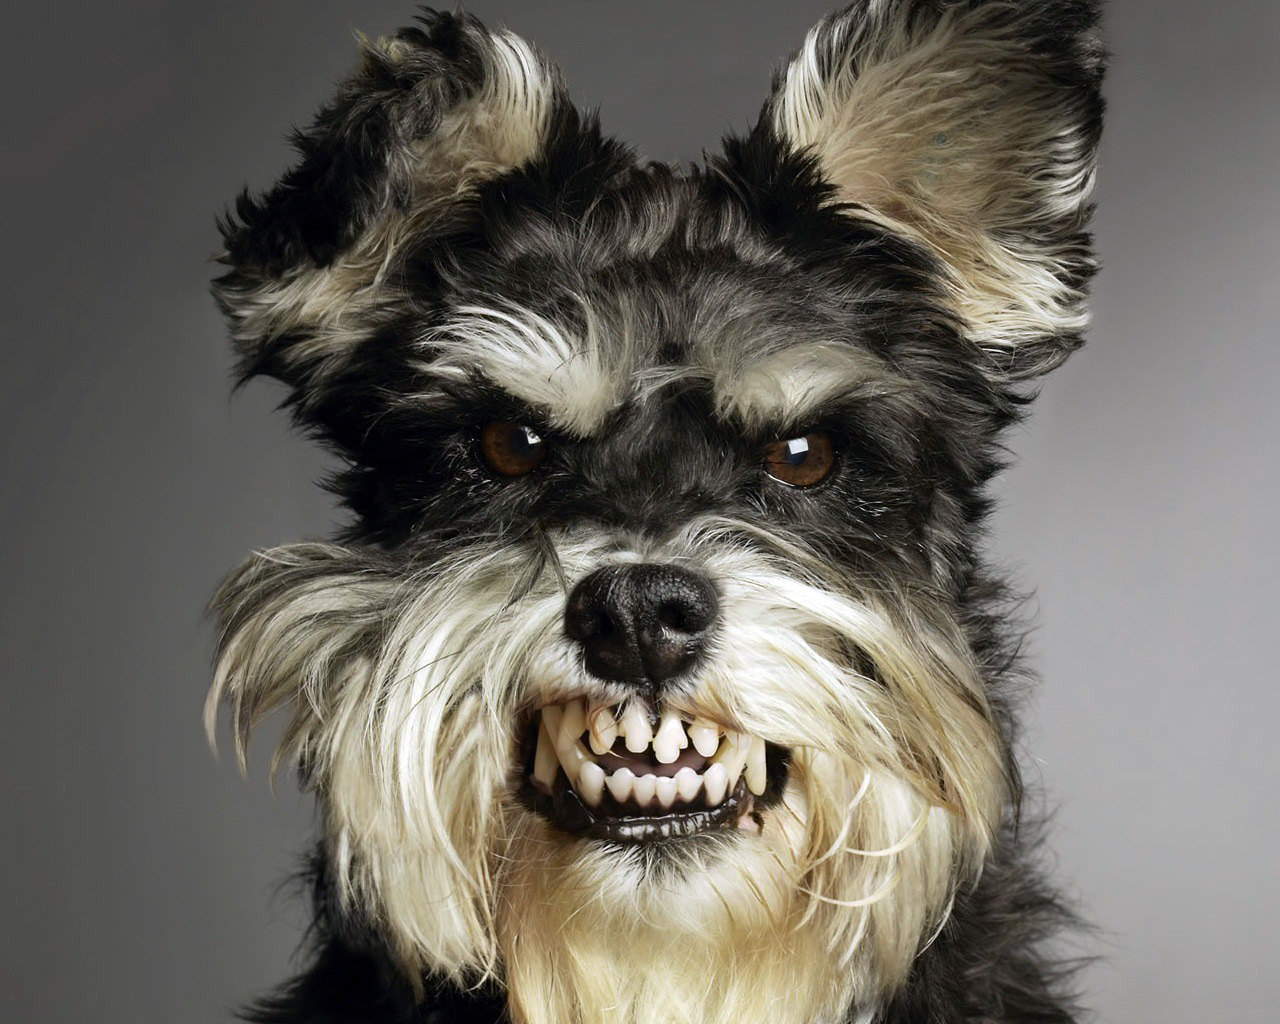 Funny Dog Wallpaper All Wallpapers:...